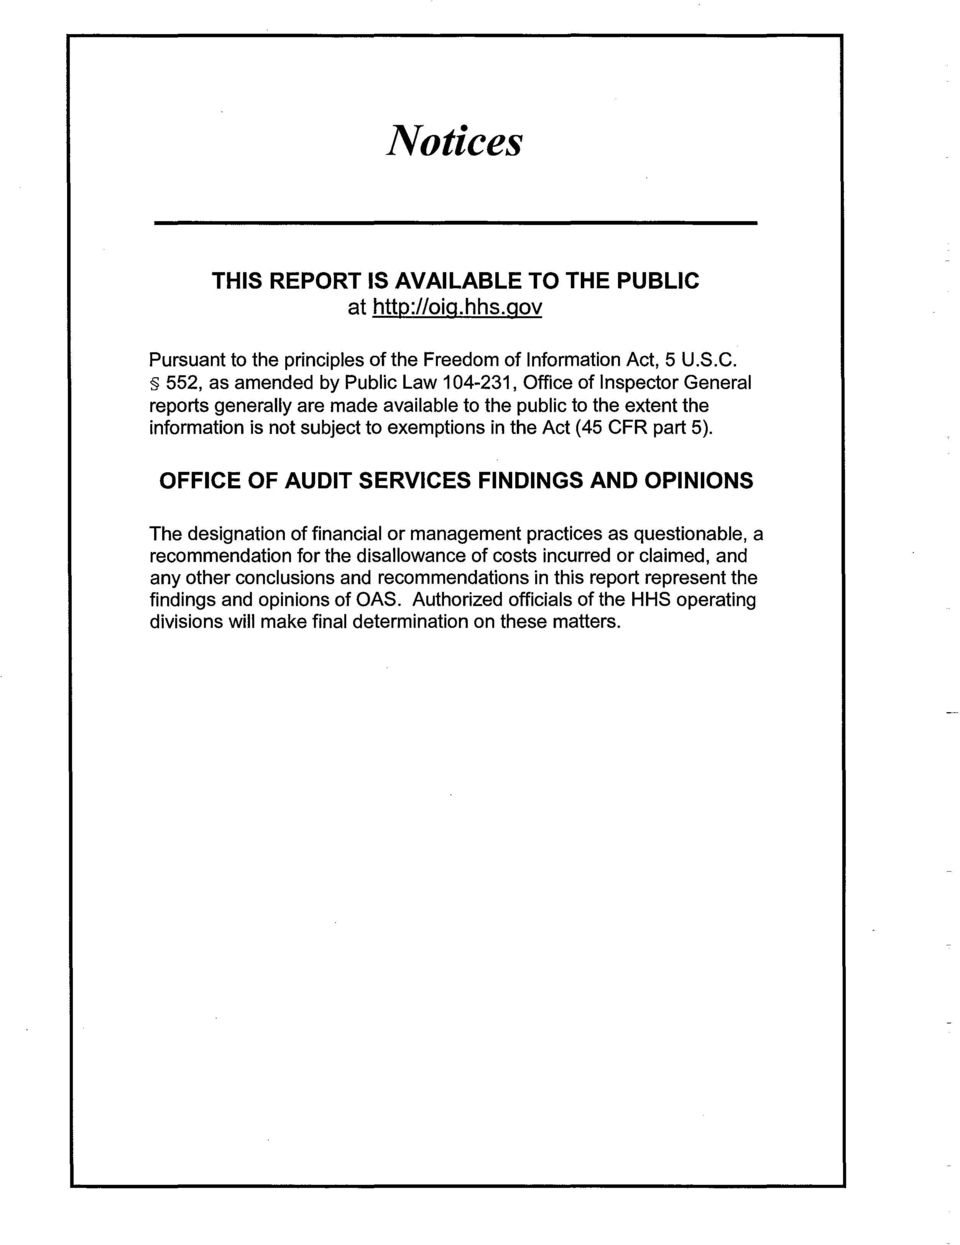 552, as amended by Public Law 104-231, Office of Inspector General reports generally are made available to the public to the extent the information is not subject to exemptions in the